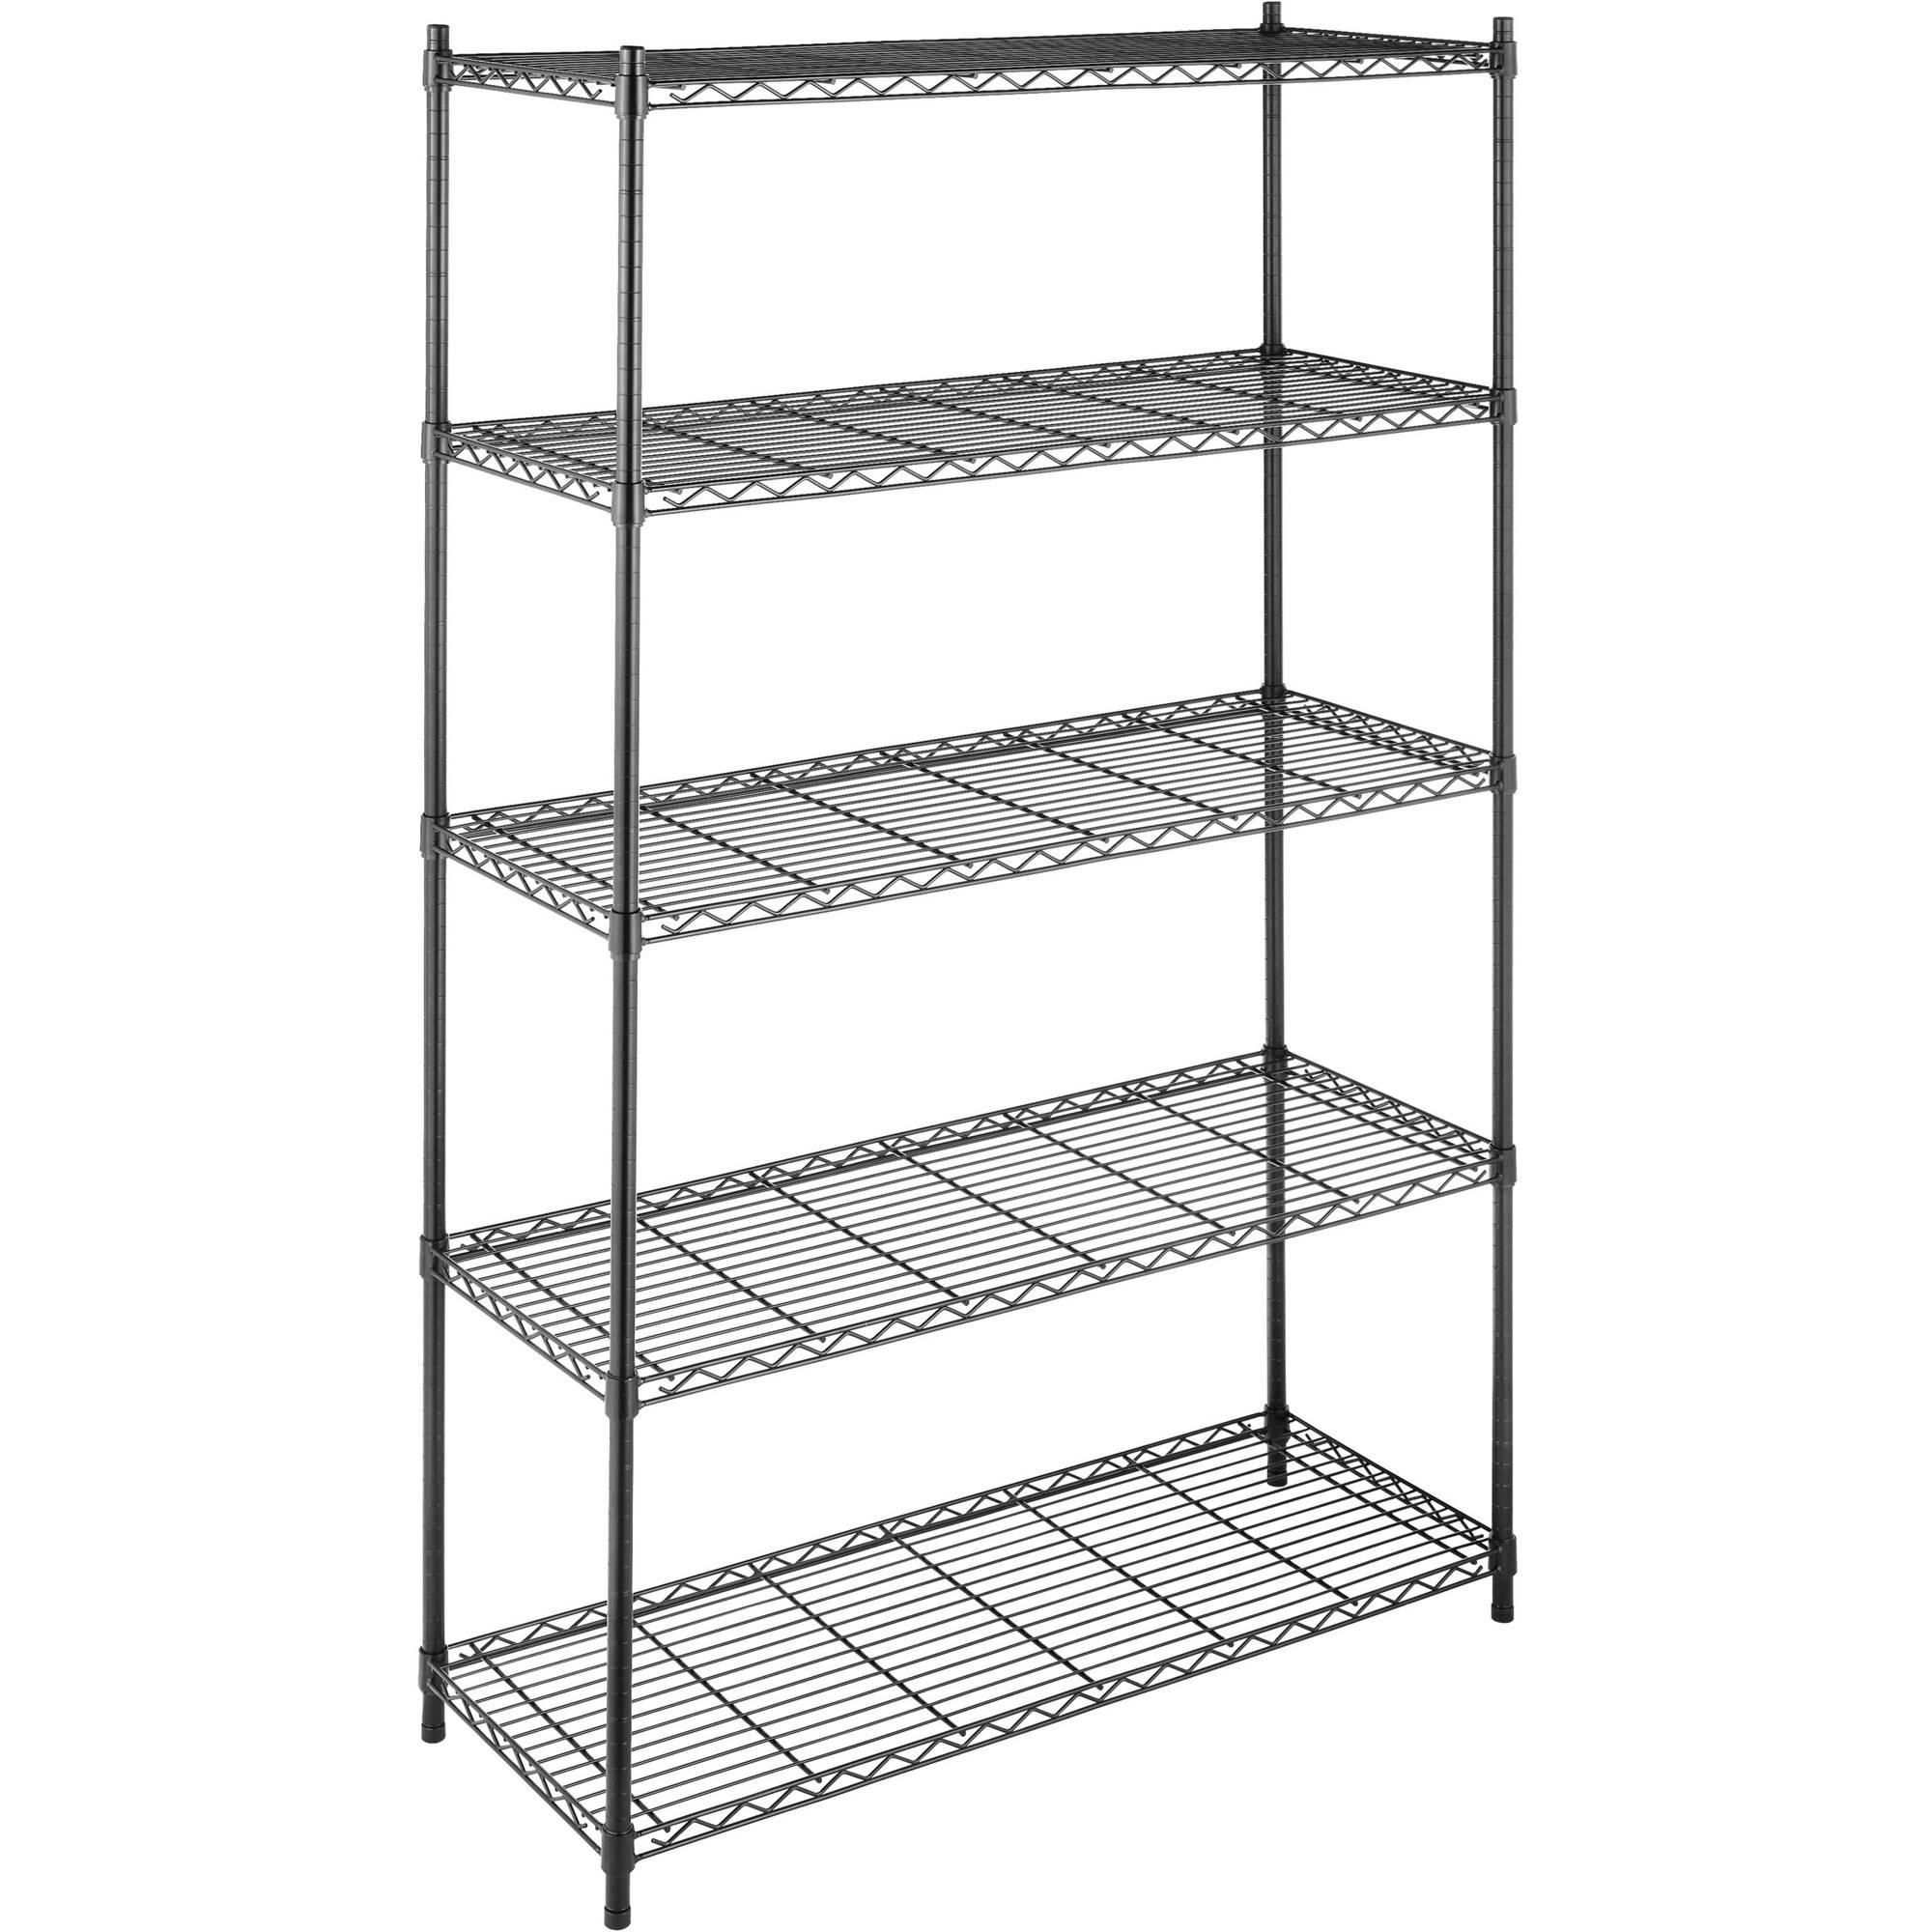 Whitmor Supreme Large 5-Tier Shelving, Black